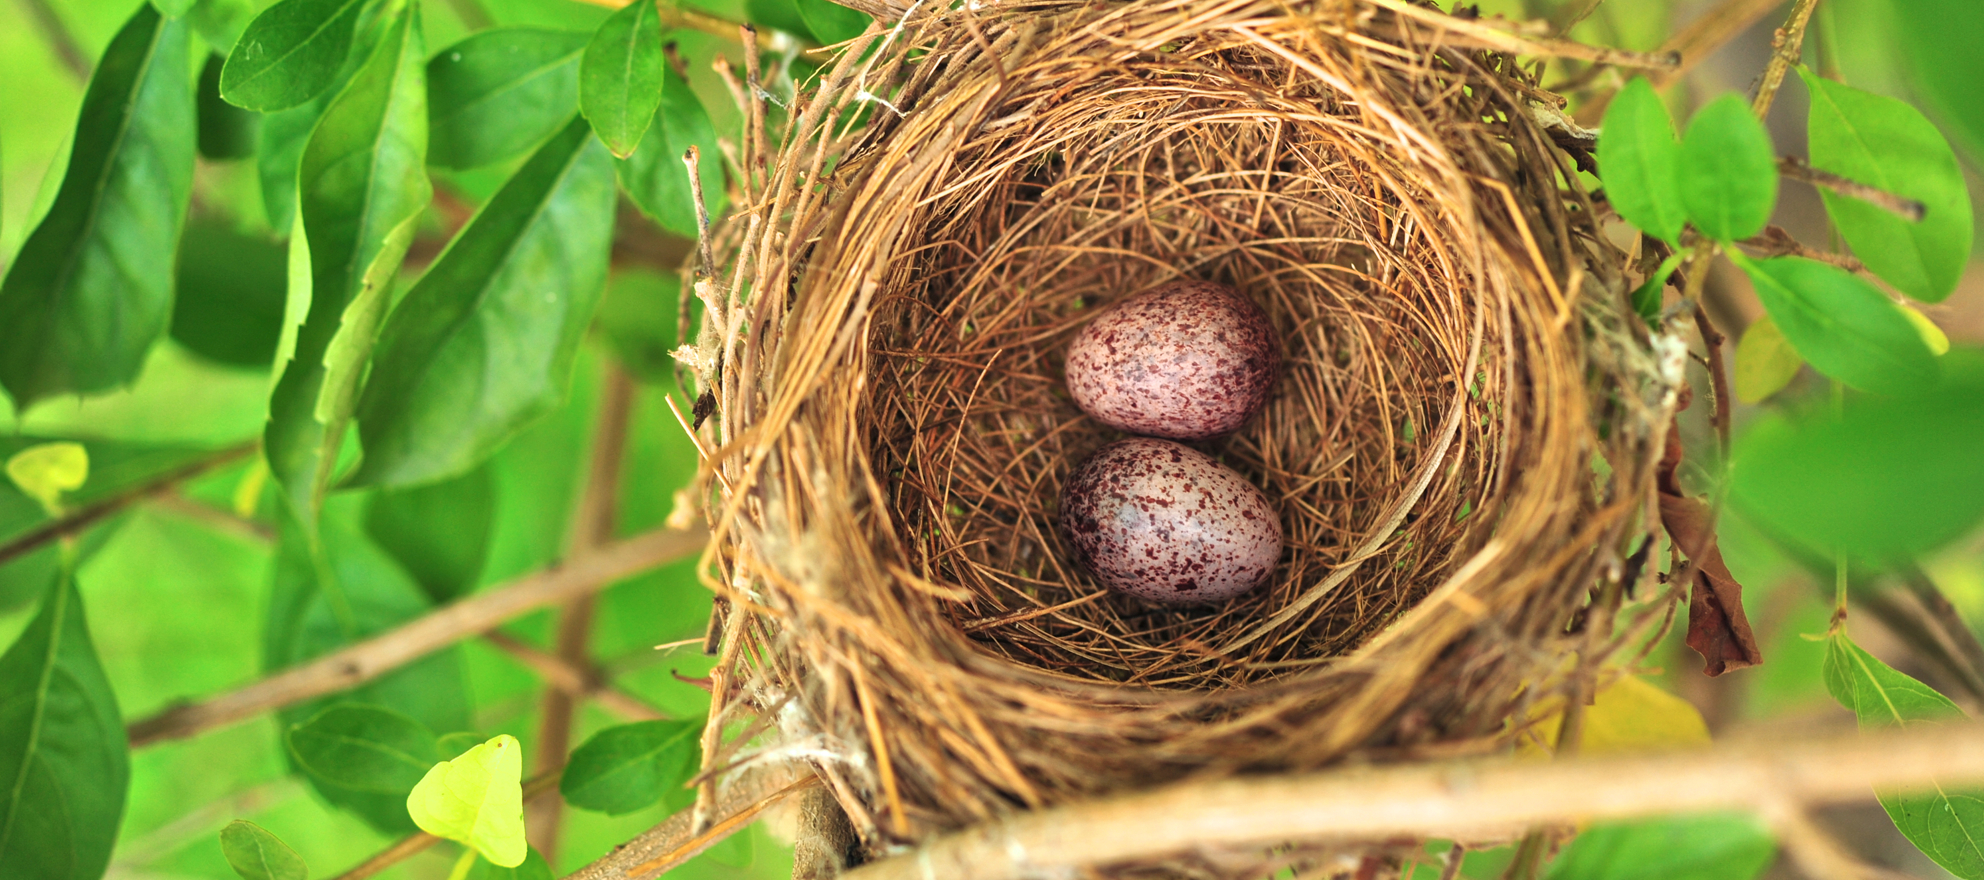 Houston named best city for building a nest egg